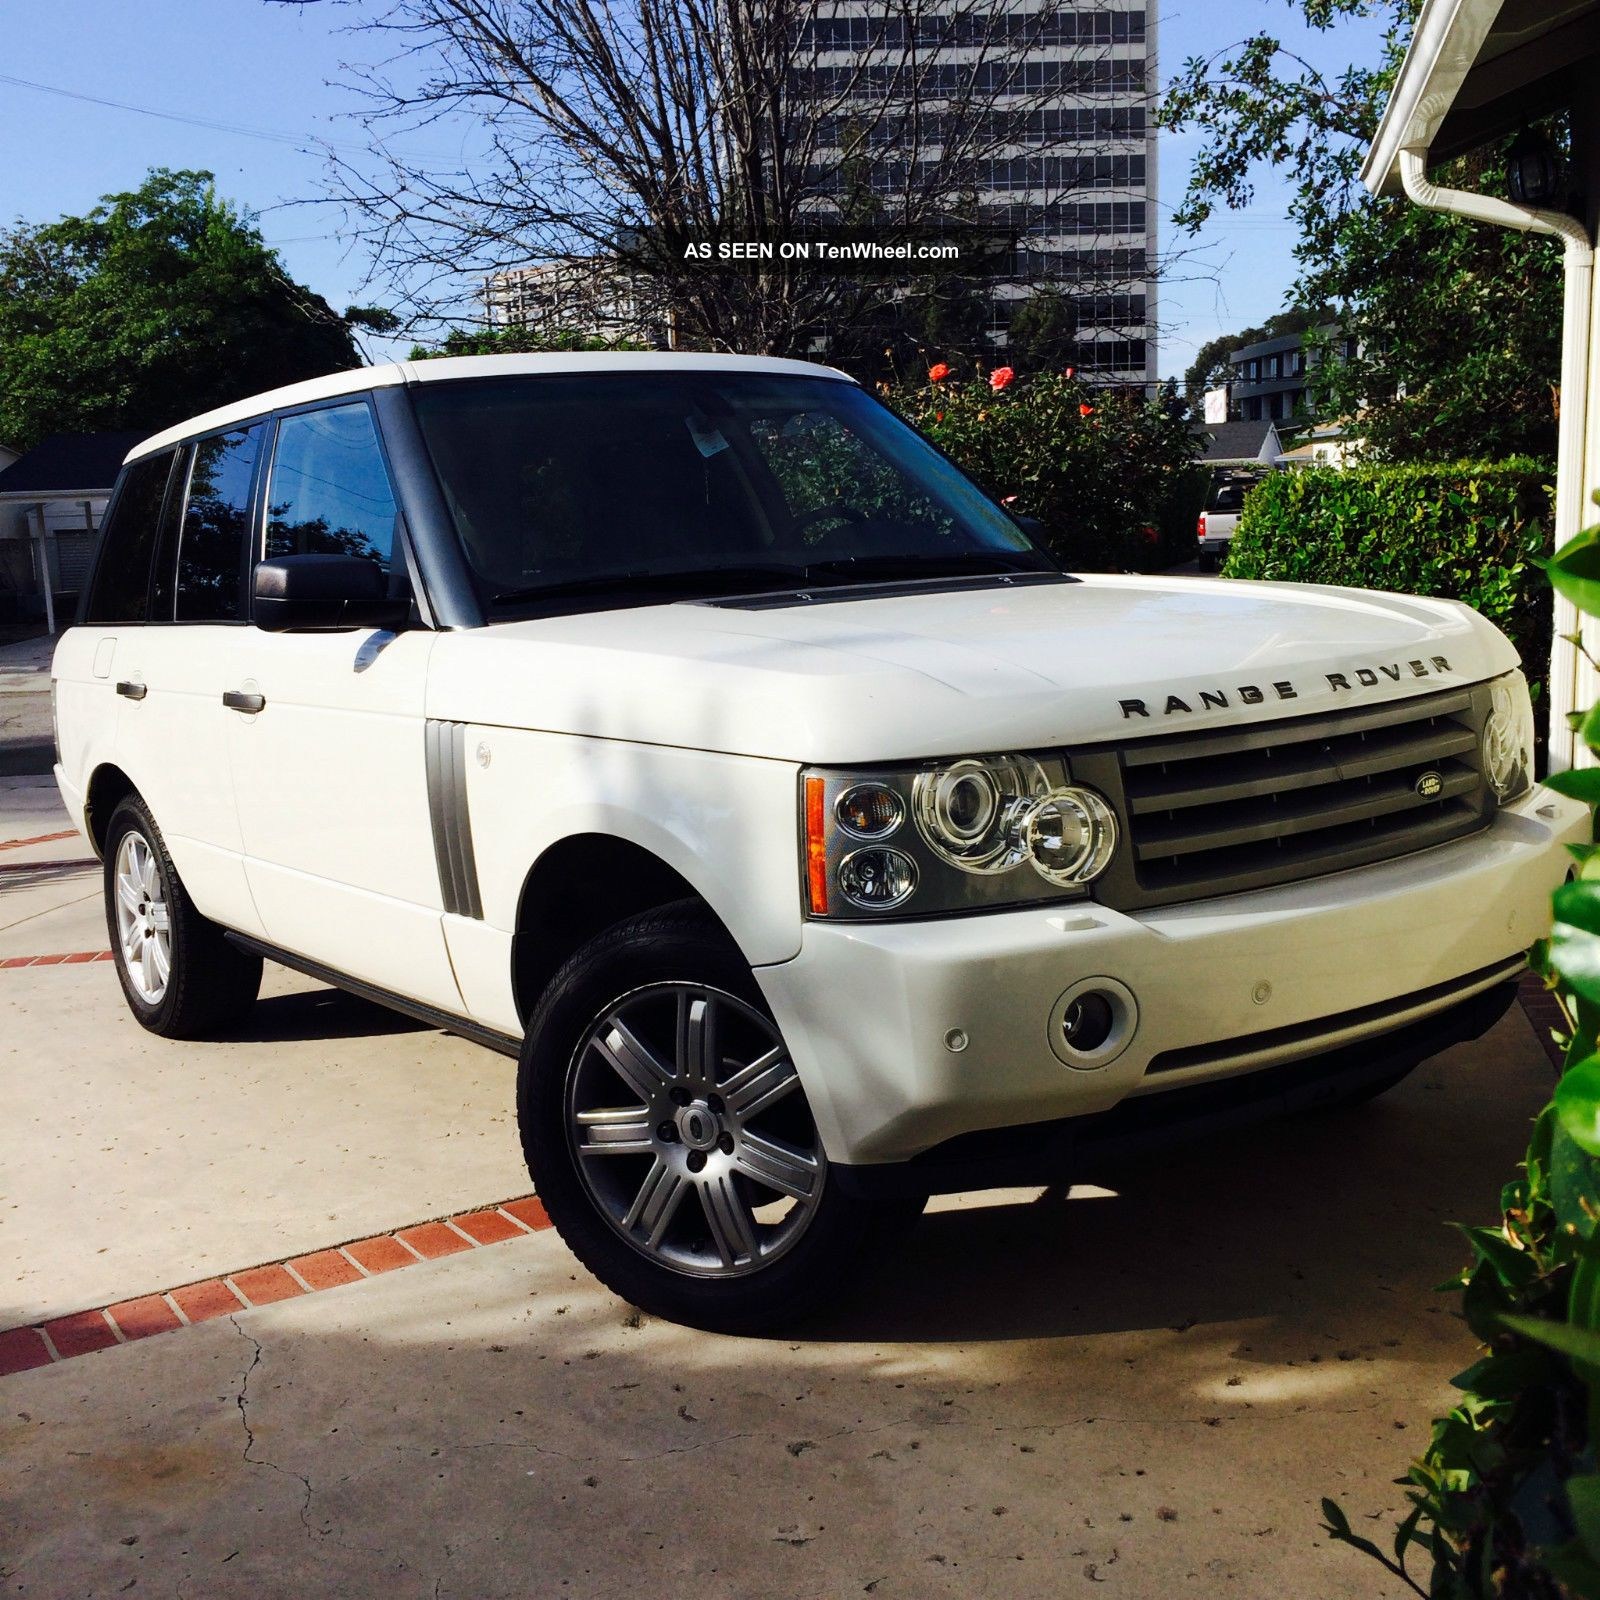 Land Rover 4 Hse: 2006 Land Rover Range Rover Hse Sport Utility 4